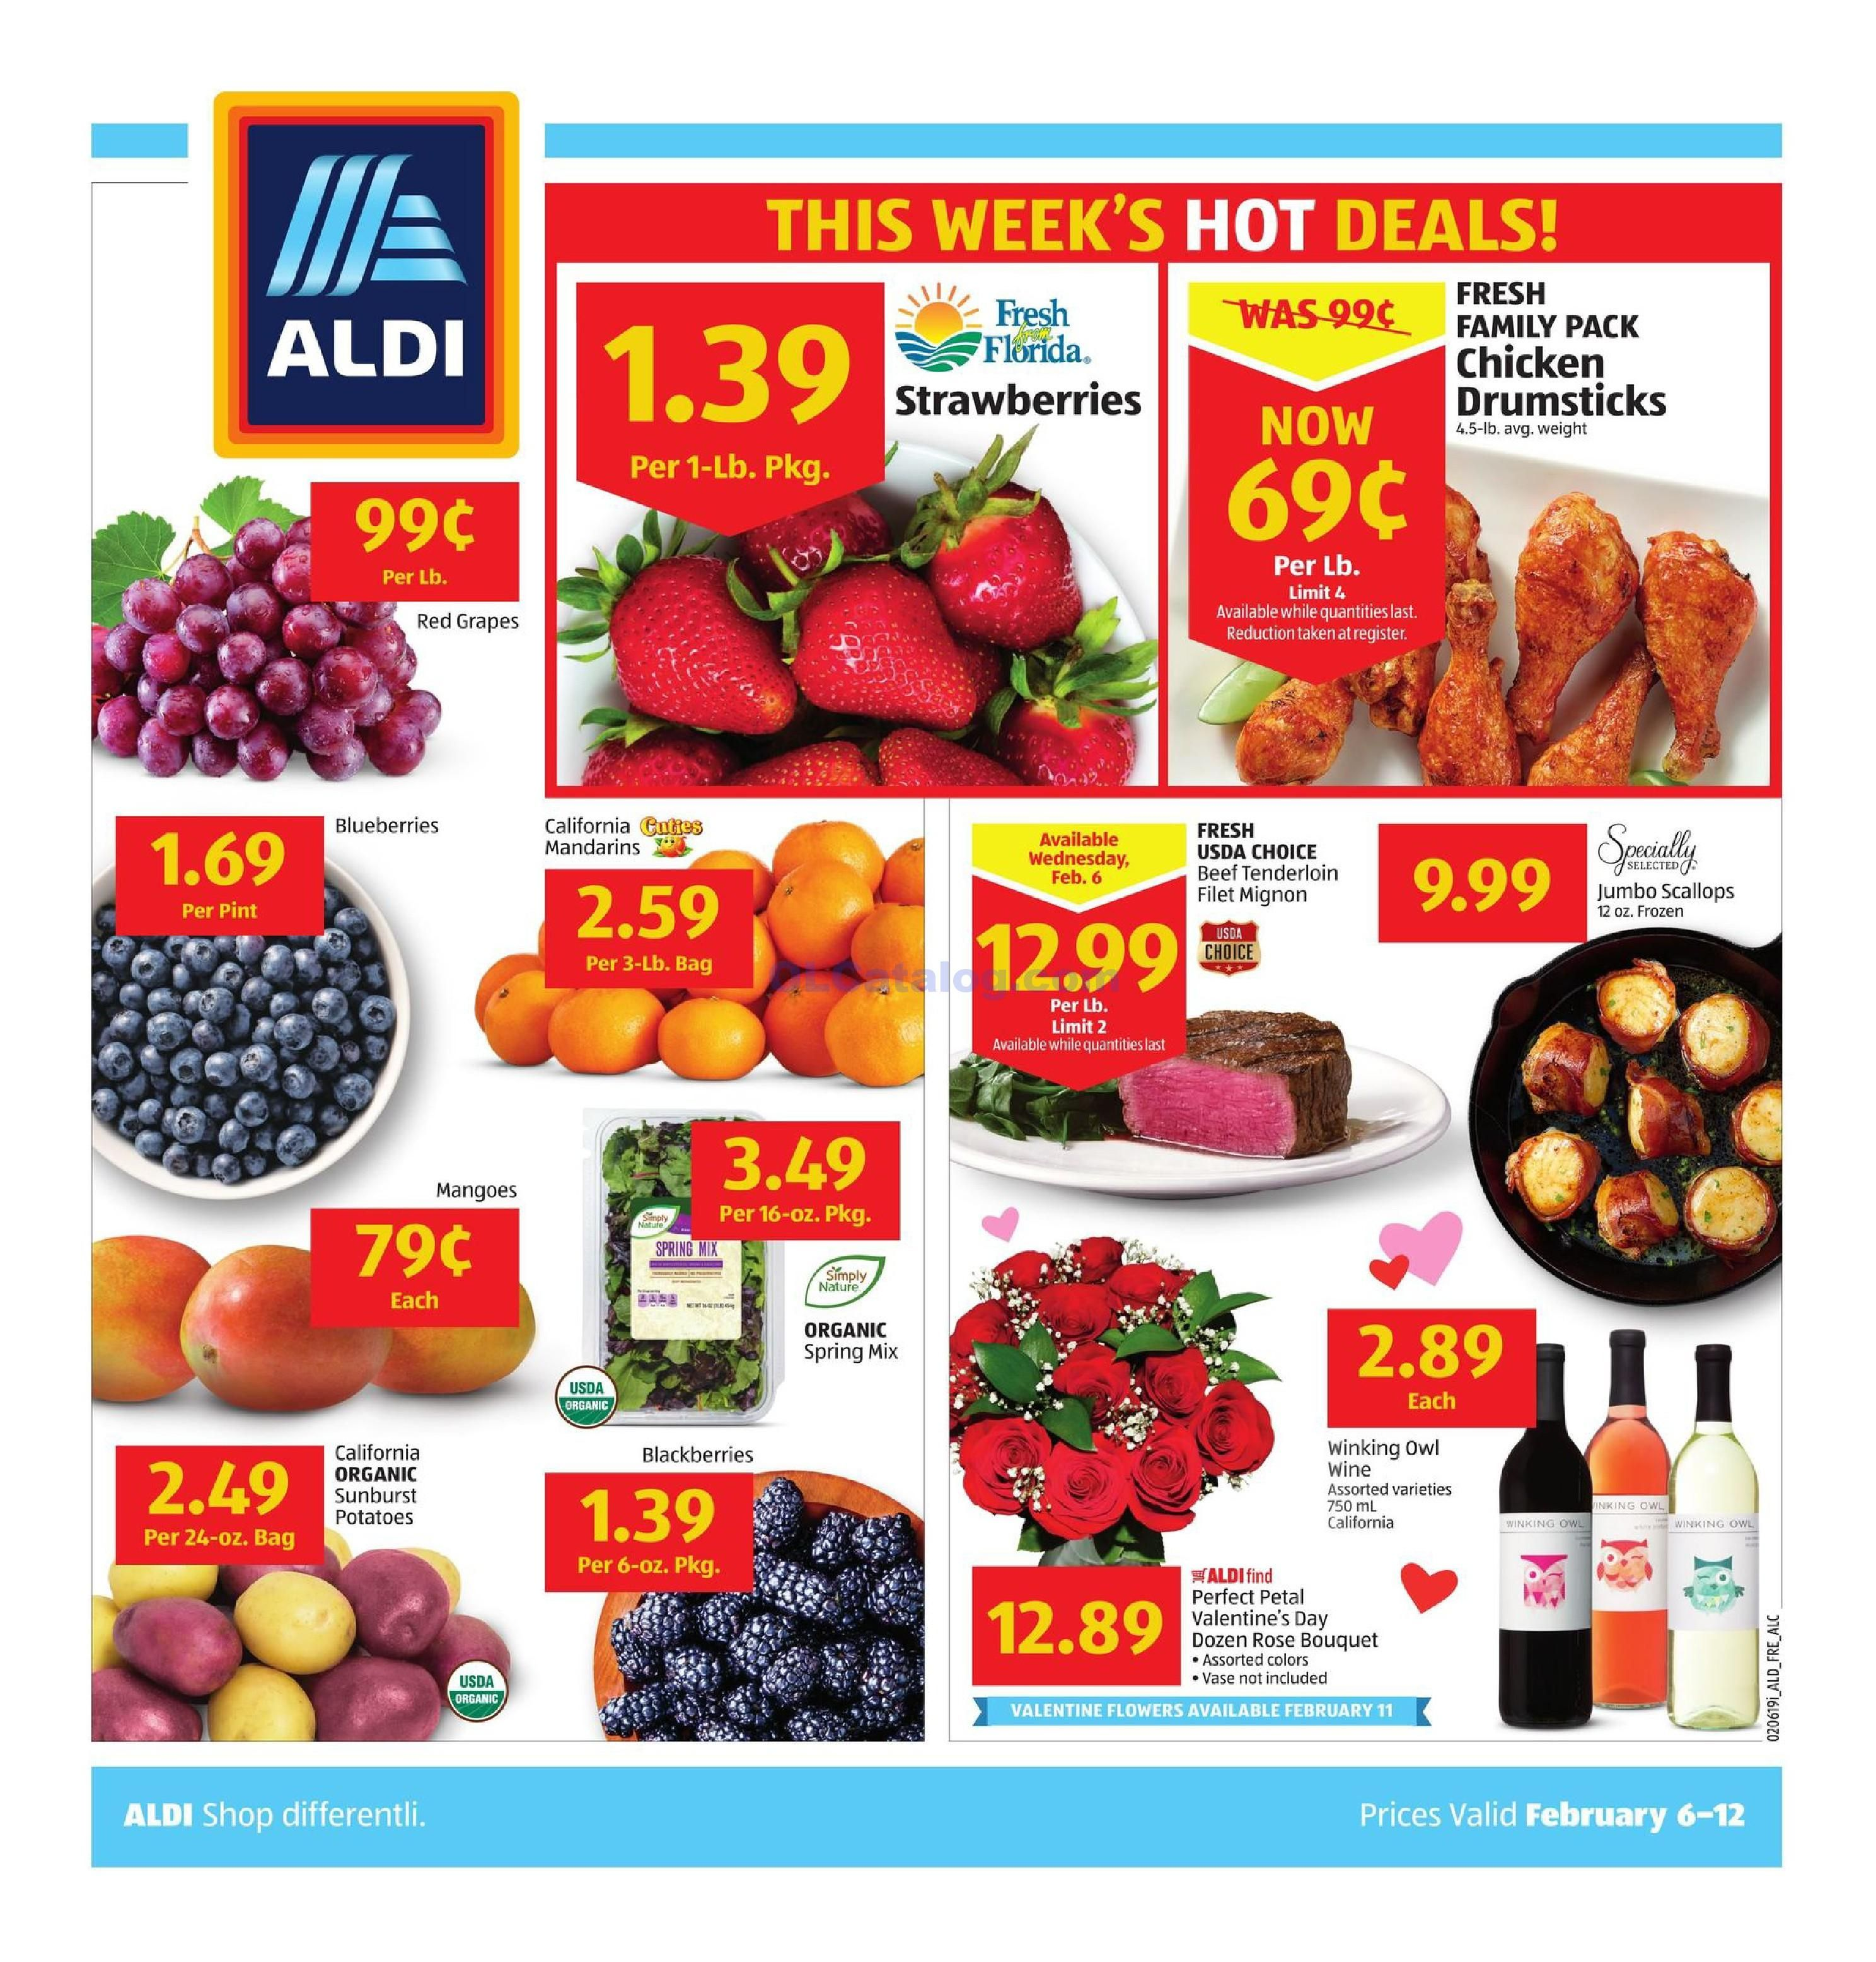 Aldi Weekly Ad February 6 12 2019 View The Latest Aldi Flyer And Weekly Circular Ad For Aldi Here Likewise You Can Find The Aldi Weekly Ads Aldi Specials